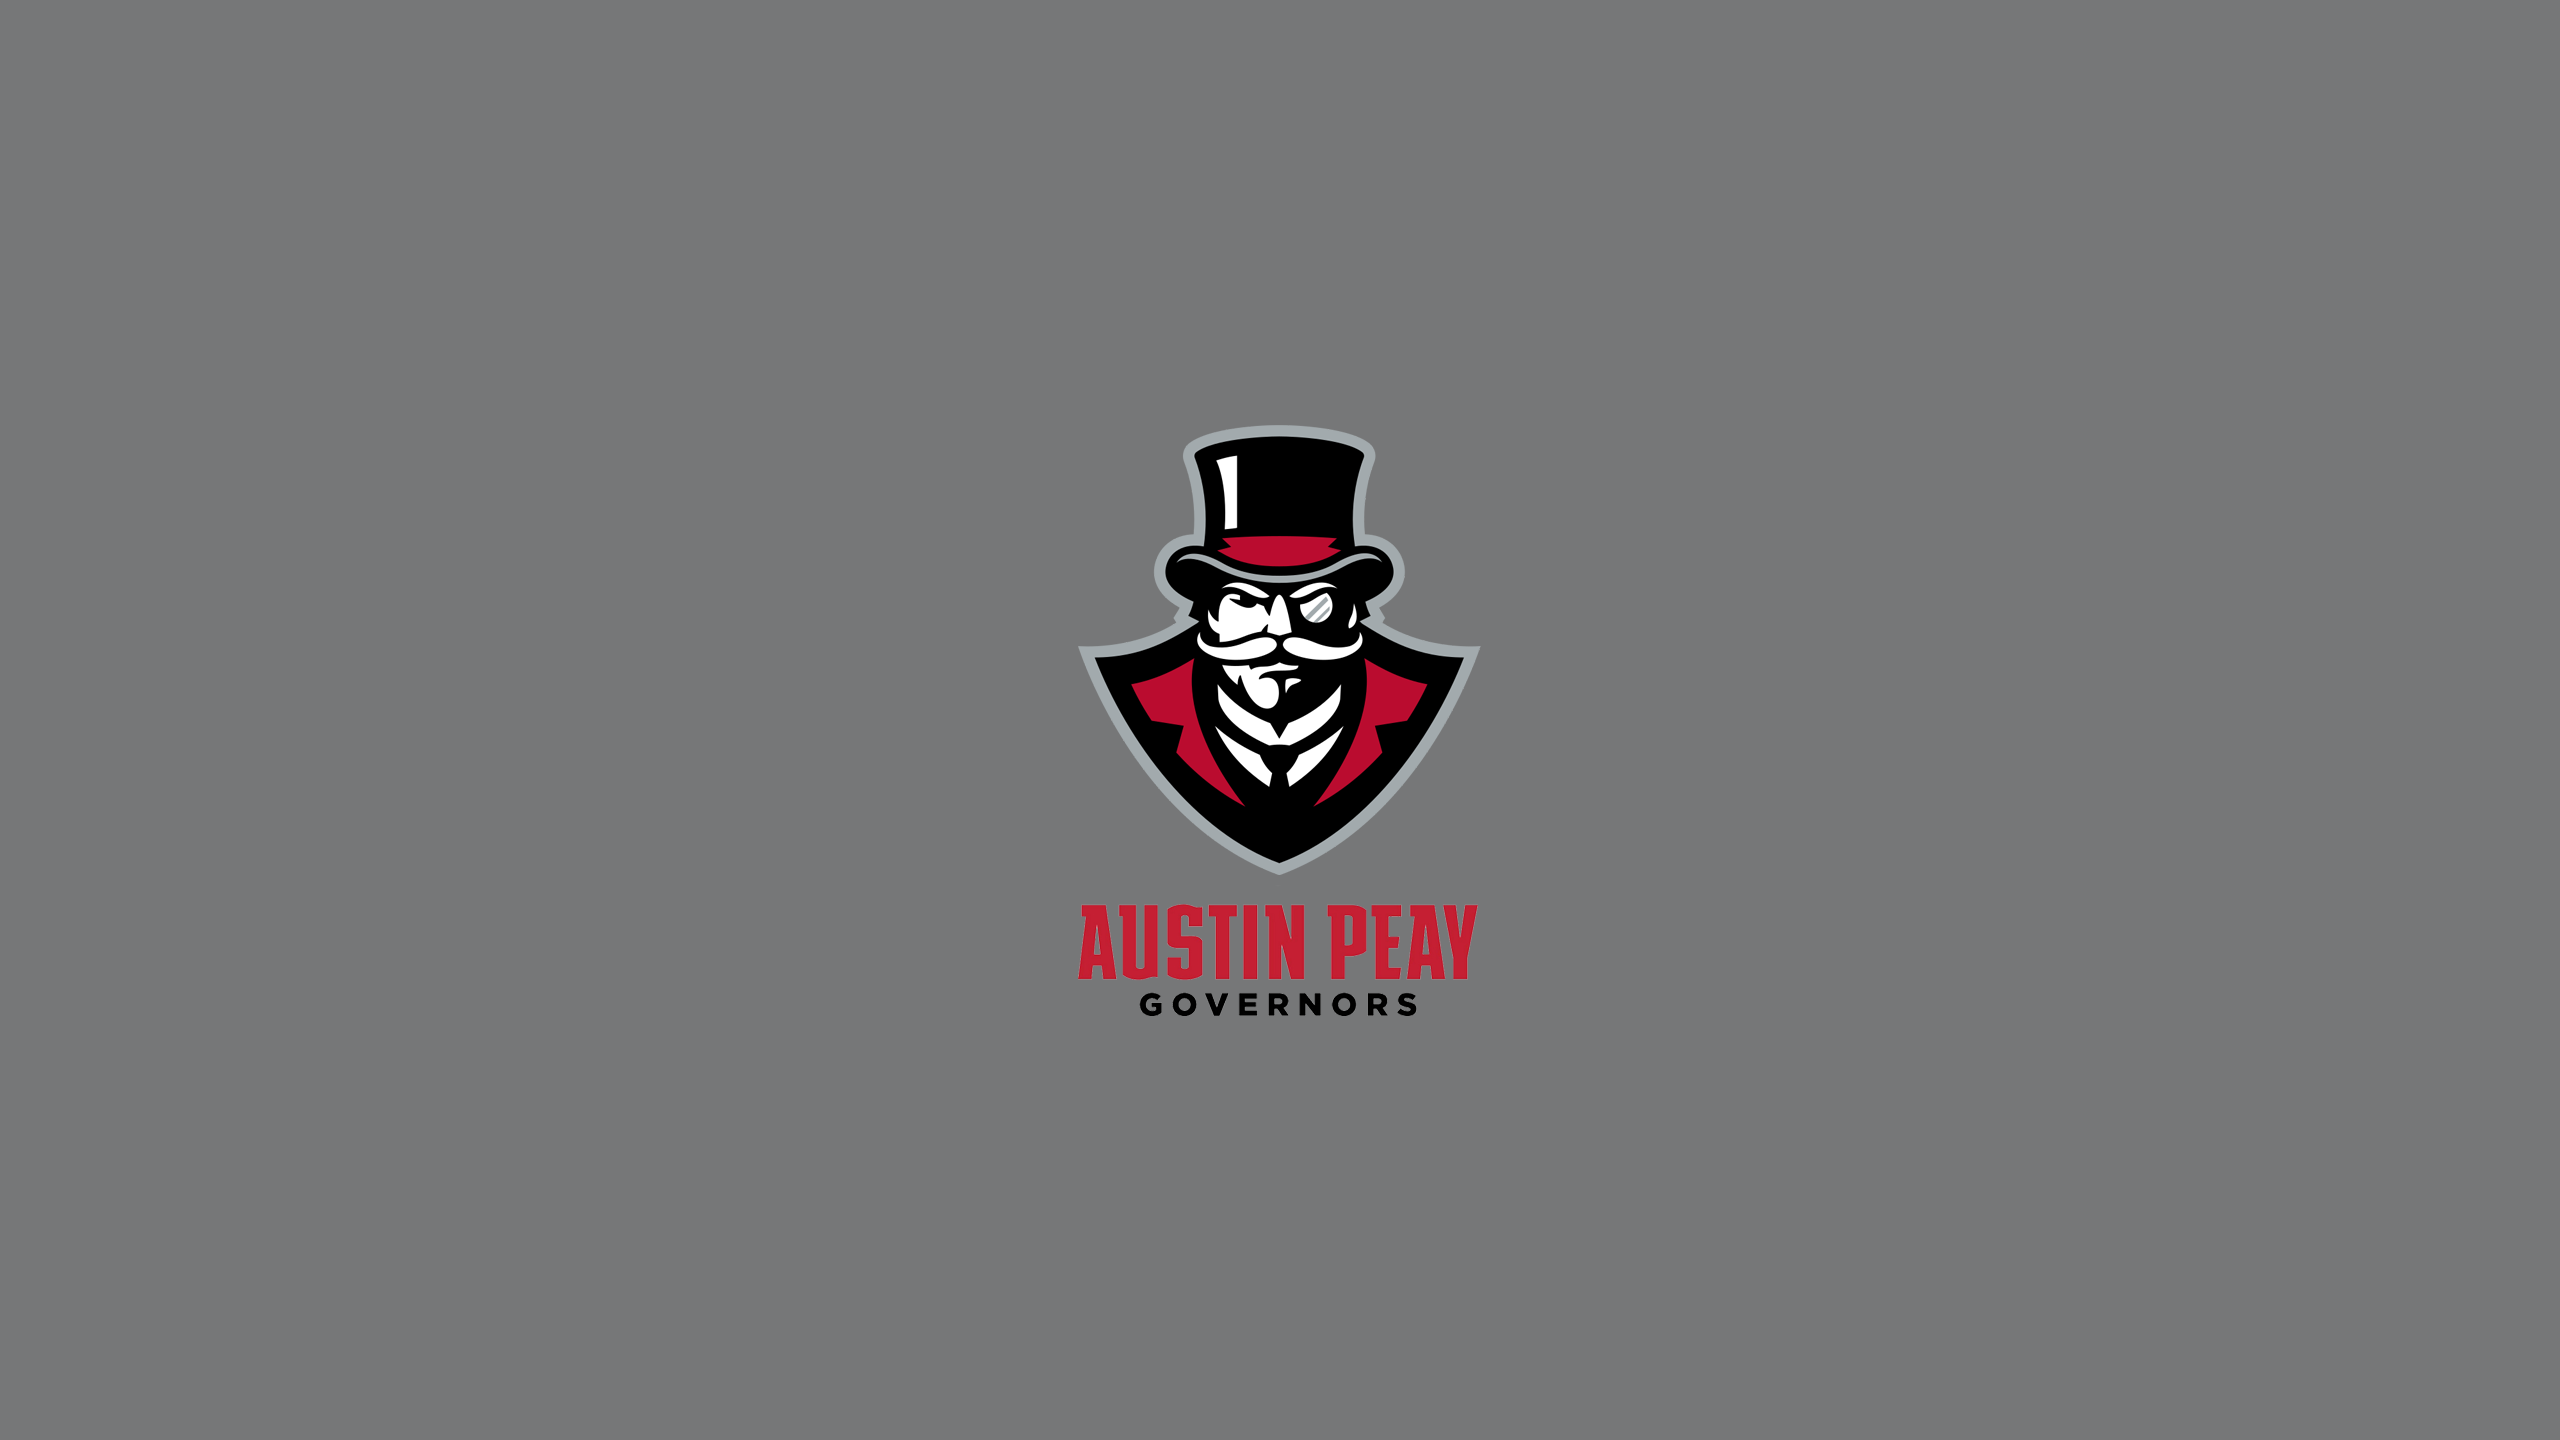 Austin Peay University Governors